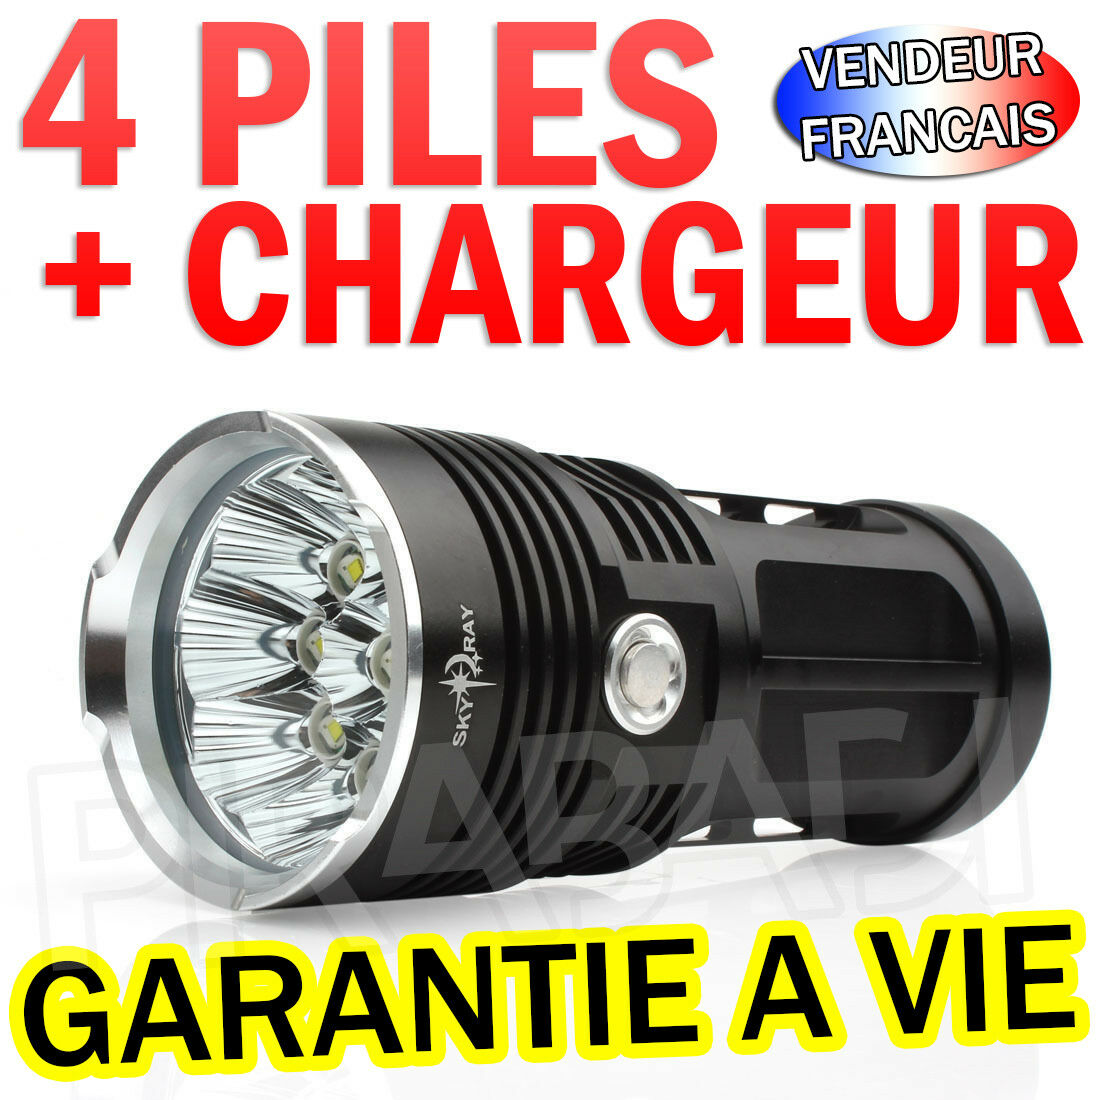 RARE - KIT COMPLET LAMPE TORCHE 25000 LUMENS 14 LED FLASHLIGHT CREE T6 Réf 036